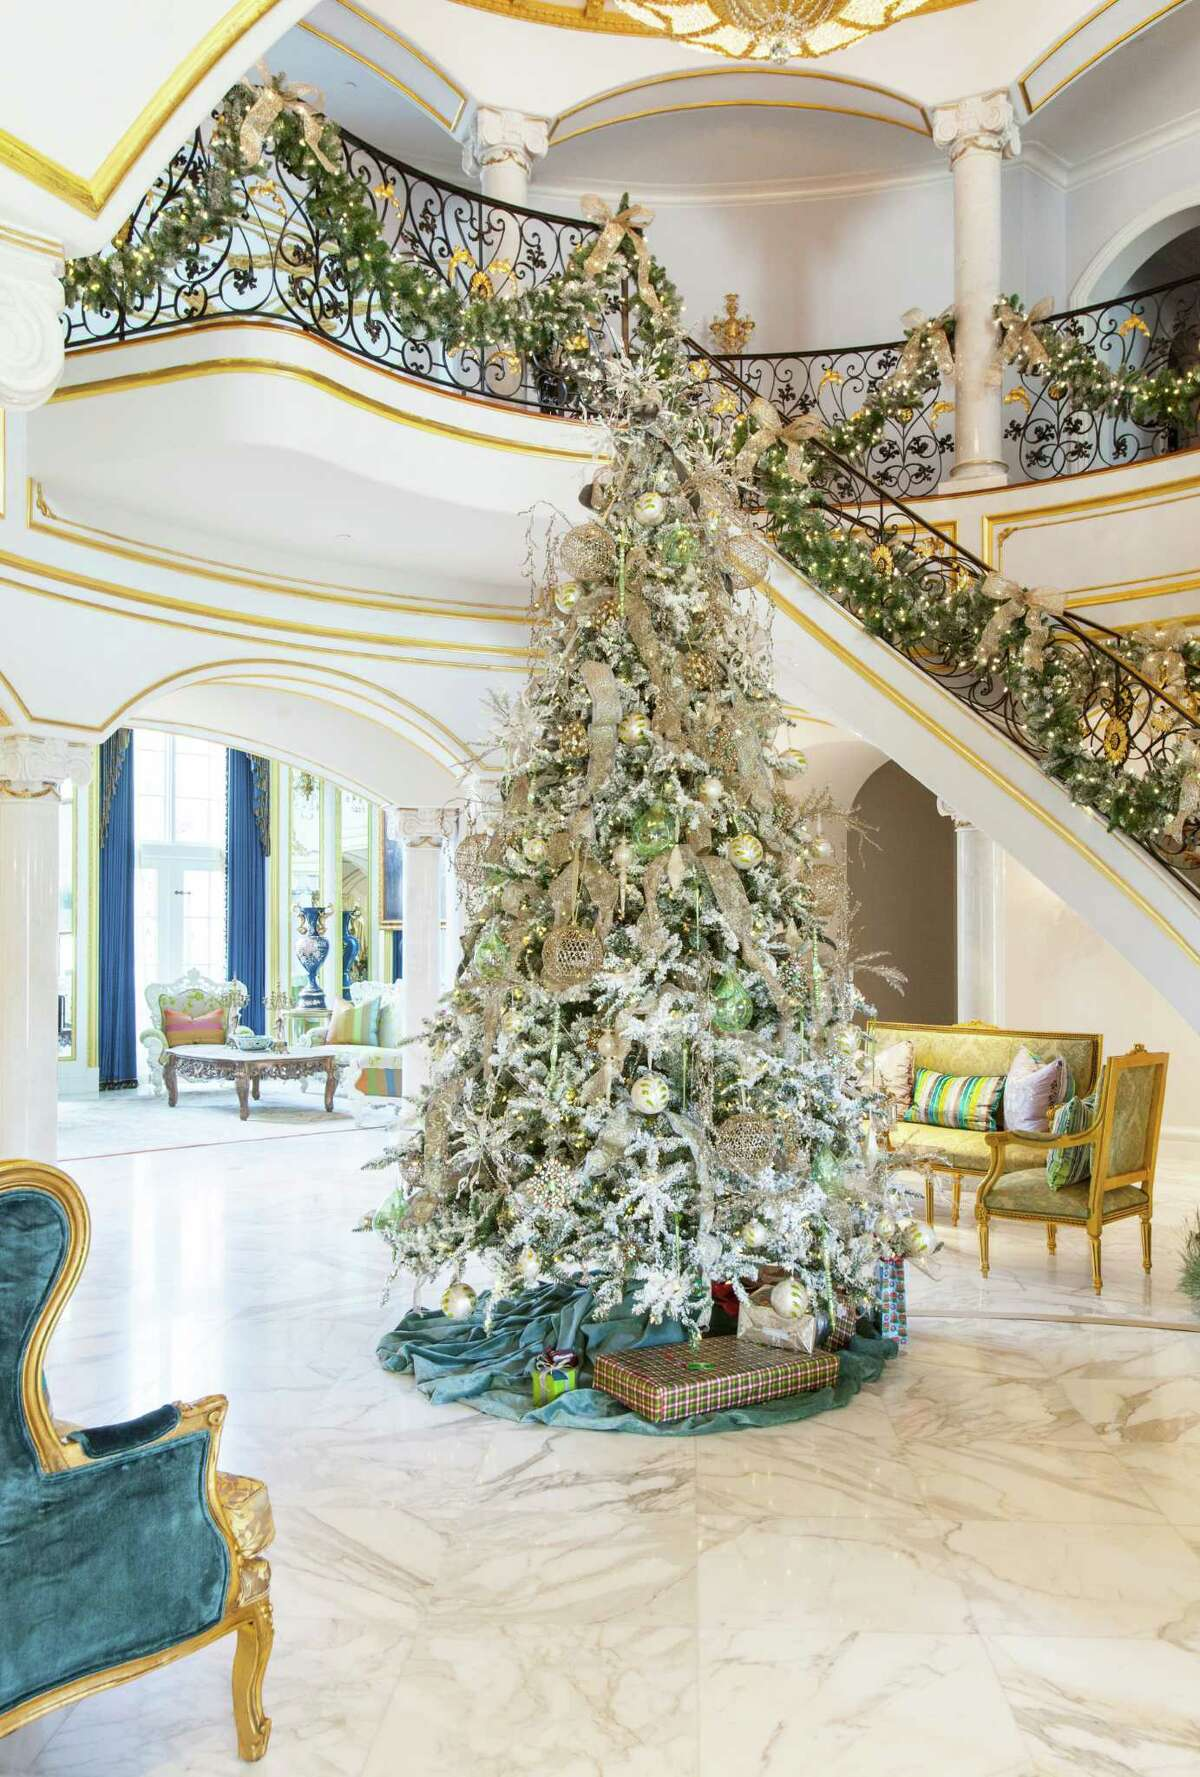 A 12-foot white-flocked Christmas tree fills the first floor of this grand River Oaks home. Designer Regina Gust used approximately 200 oversize ornaments to decorate it.